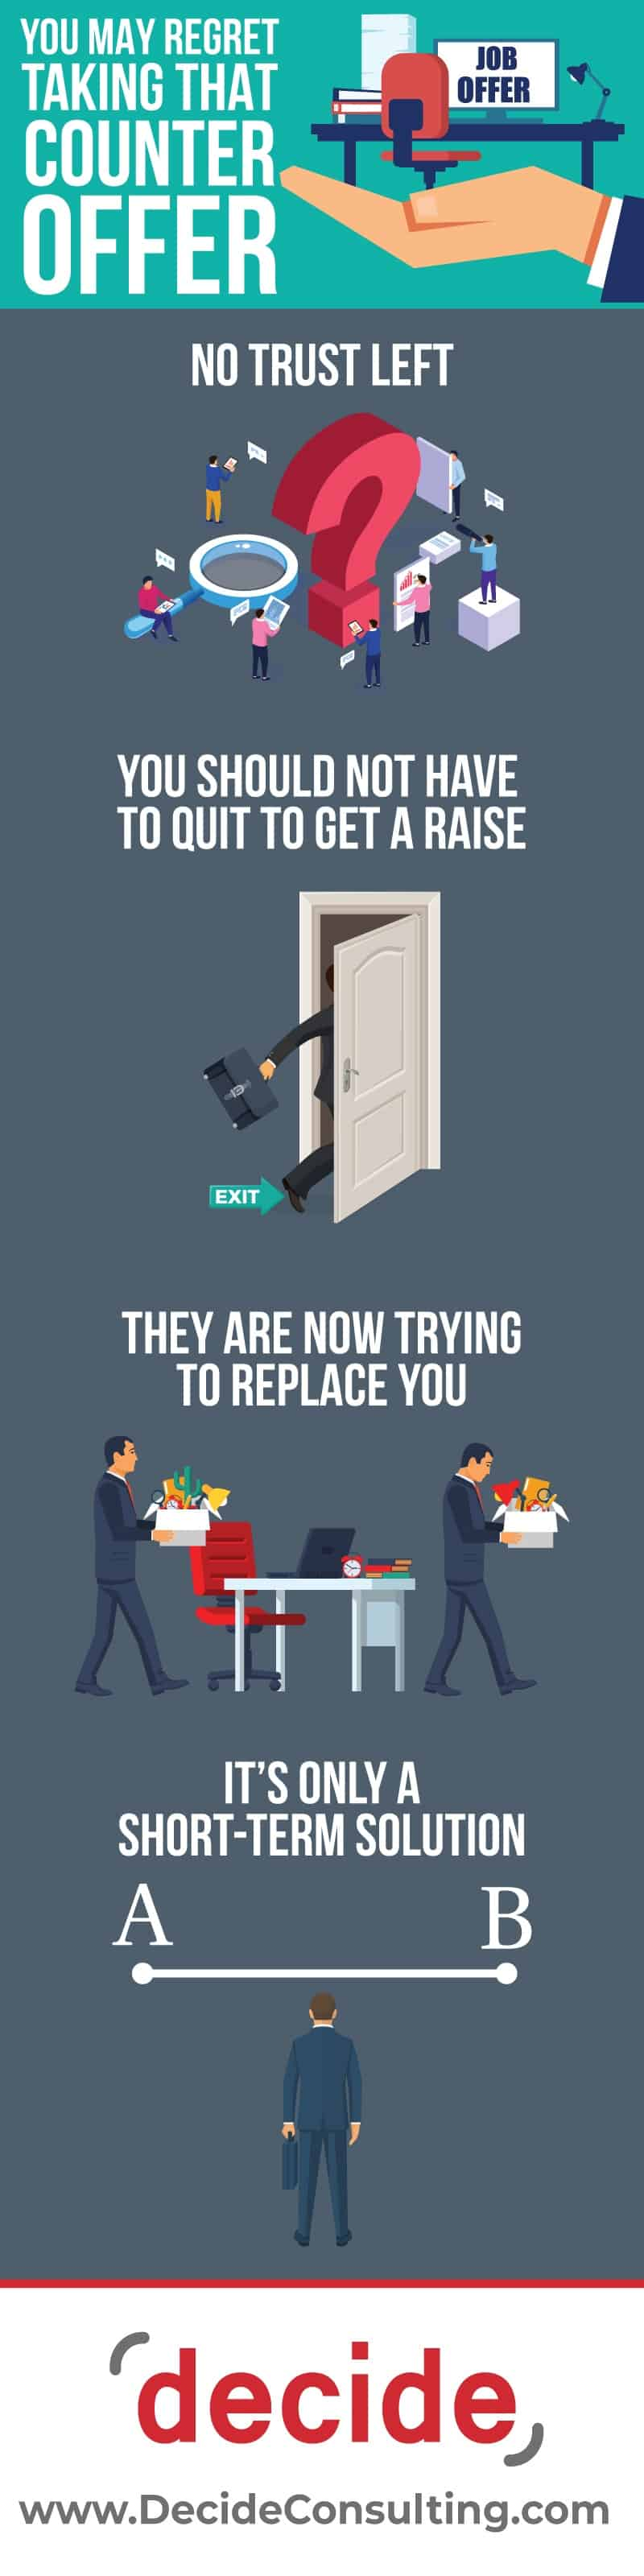 infographic You May Regret Taking that Counter Offer